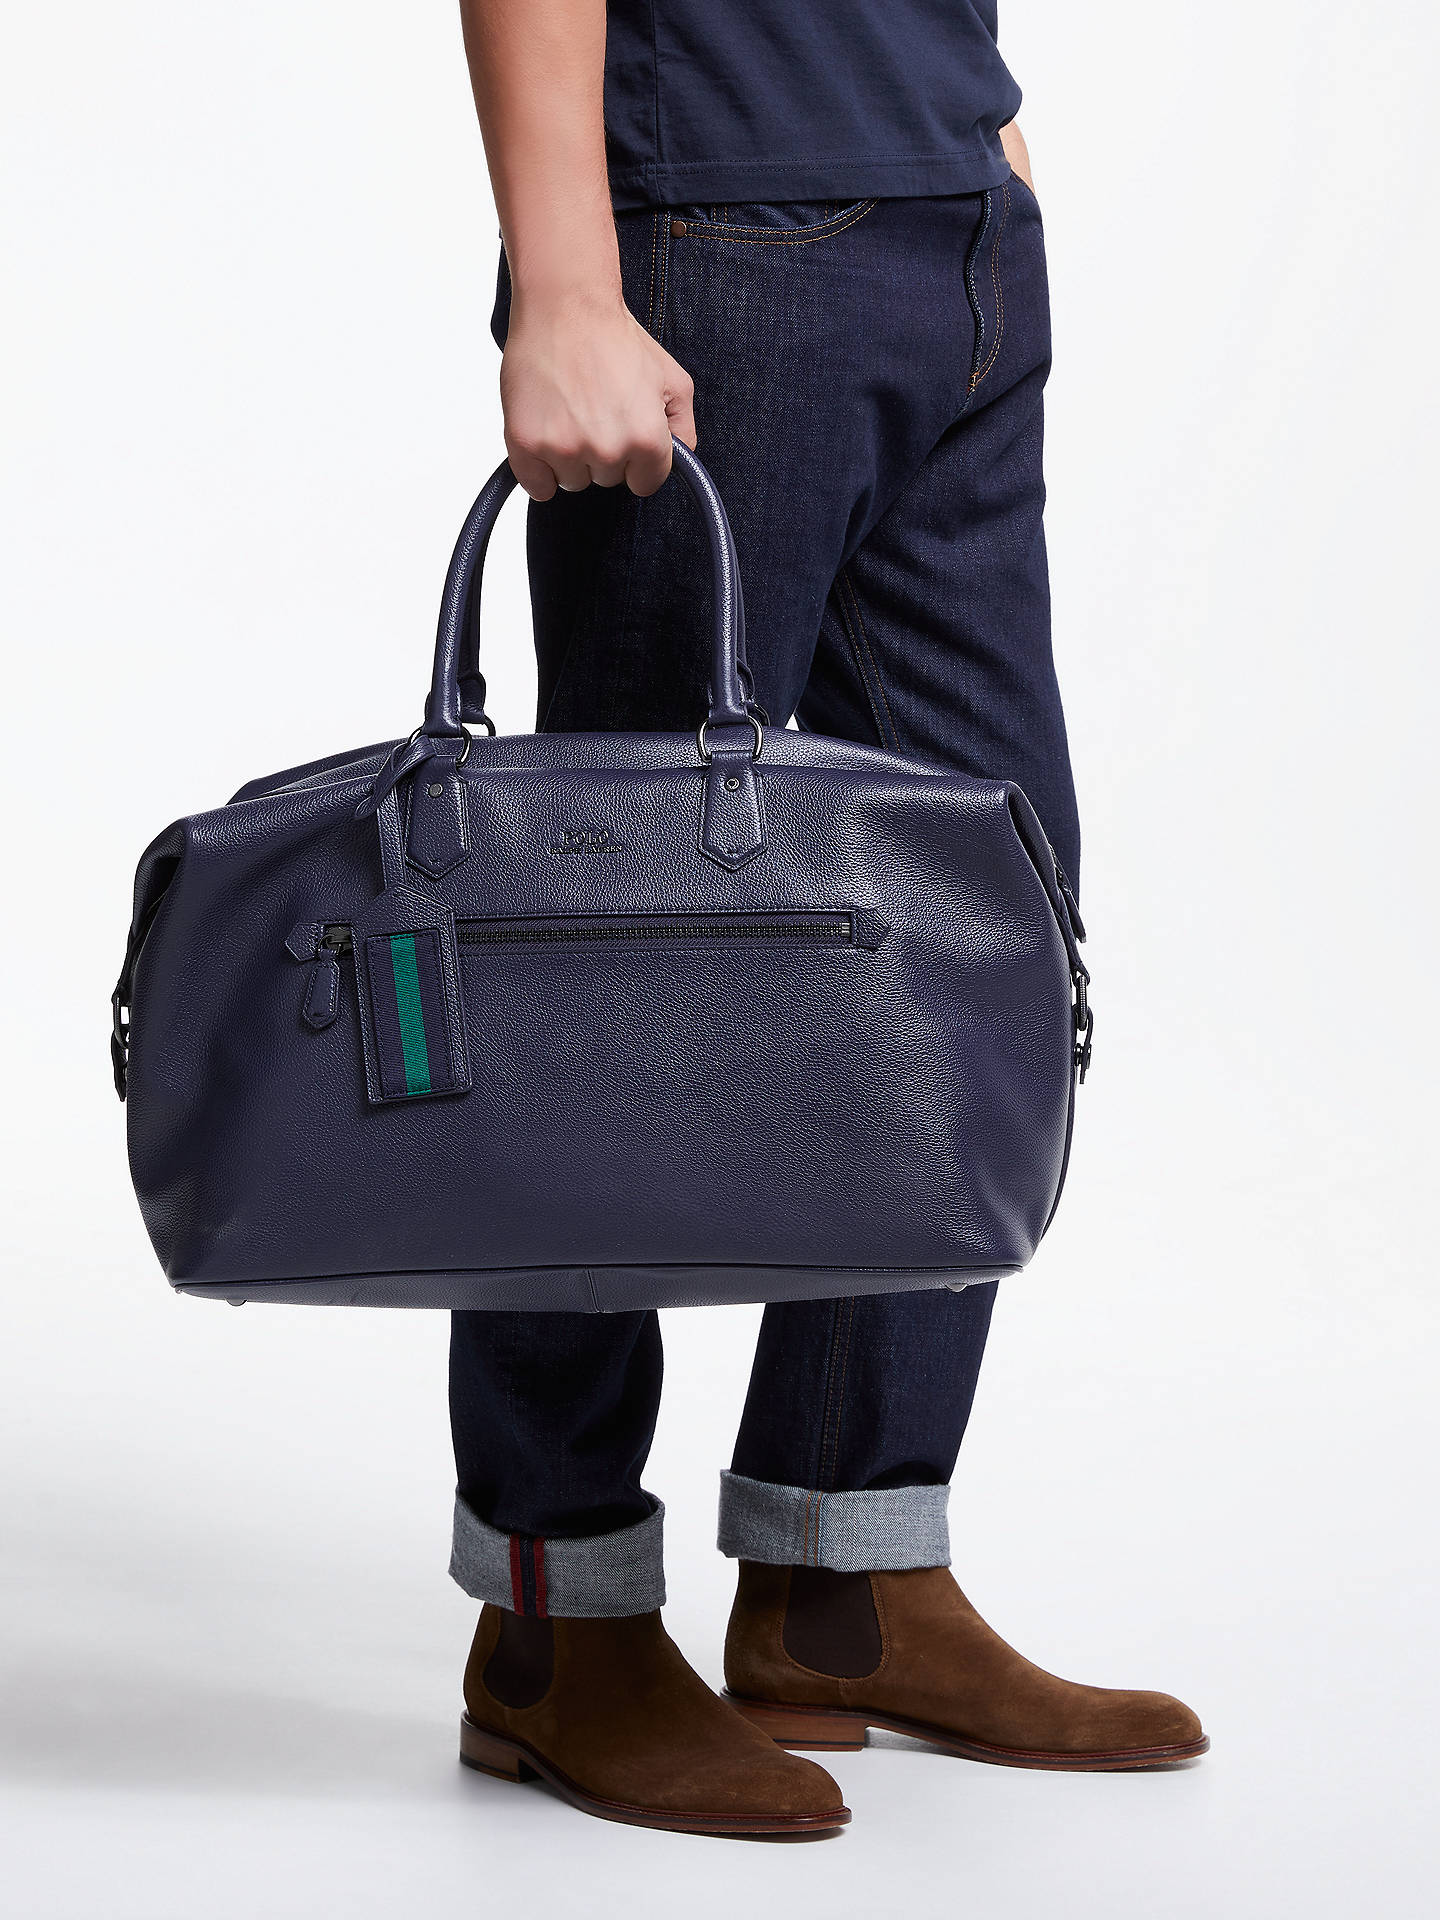 04f2c8be55cb ... Buy Polo Ralph Lauren Pebble Leather Duffle Bag, Navy Online at  johnlewis.com ...